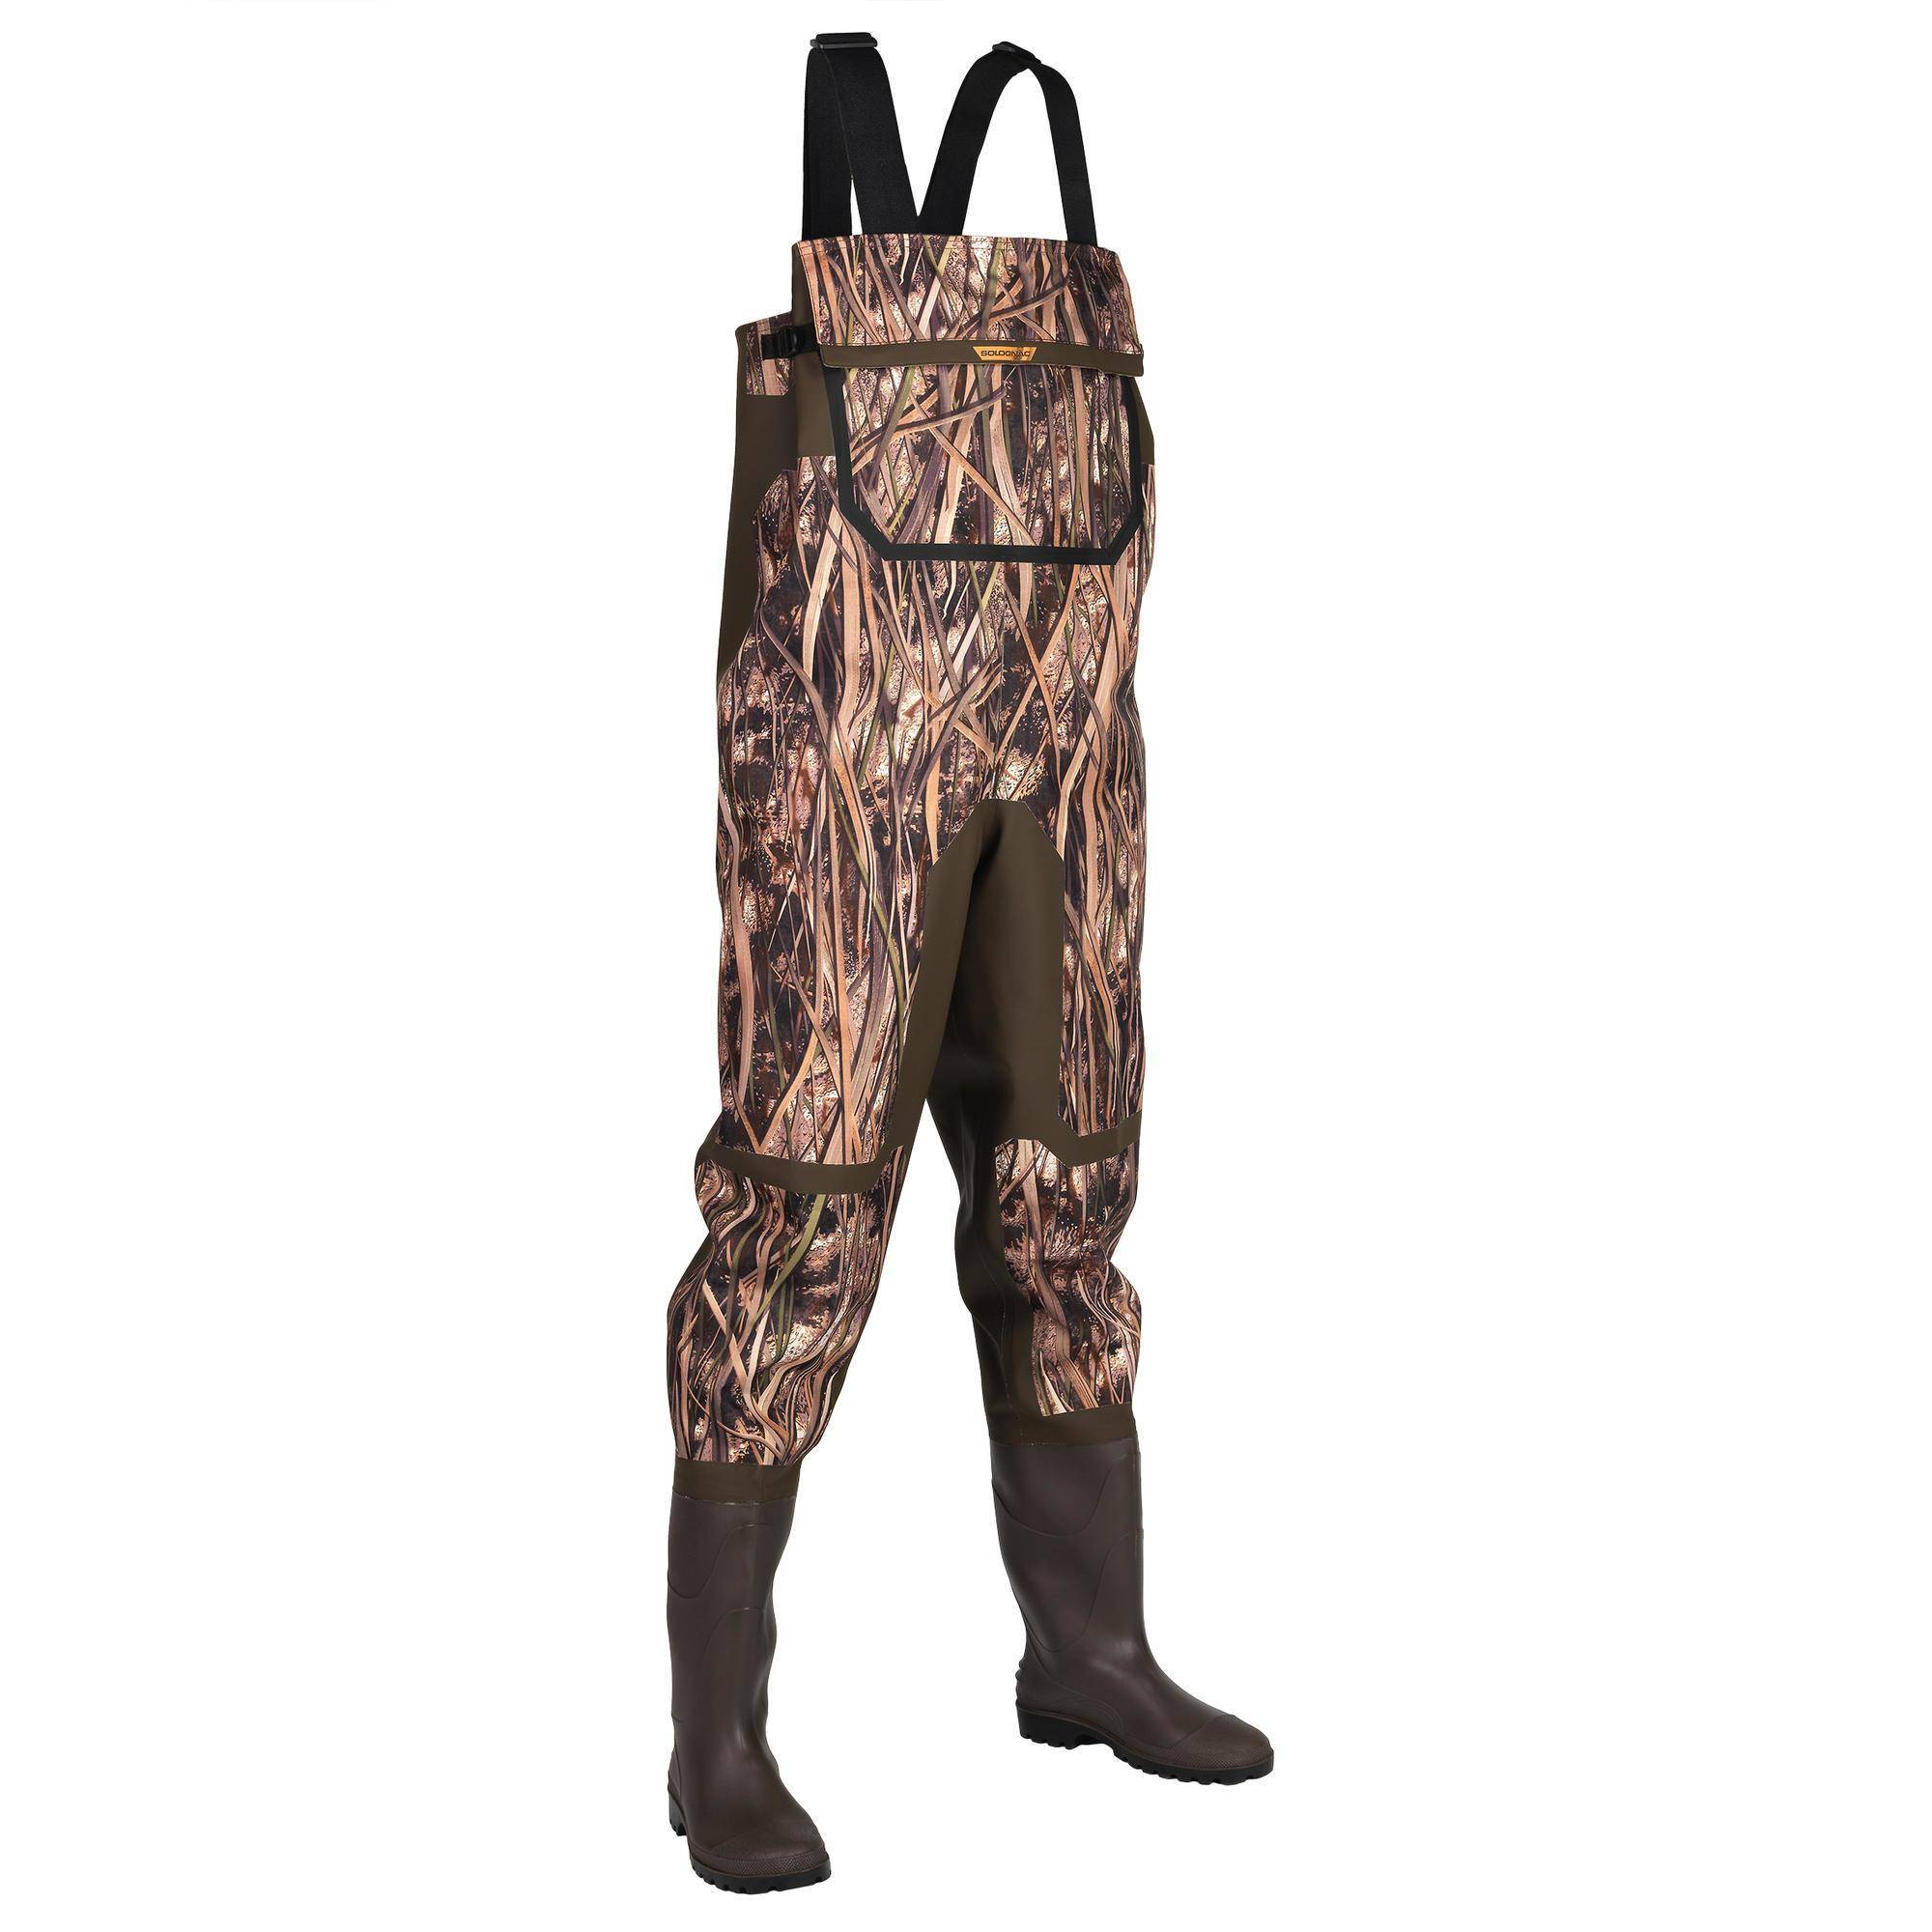 Solognac Waders chasse 500 camouflage marais - Solognac